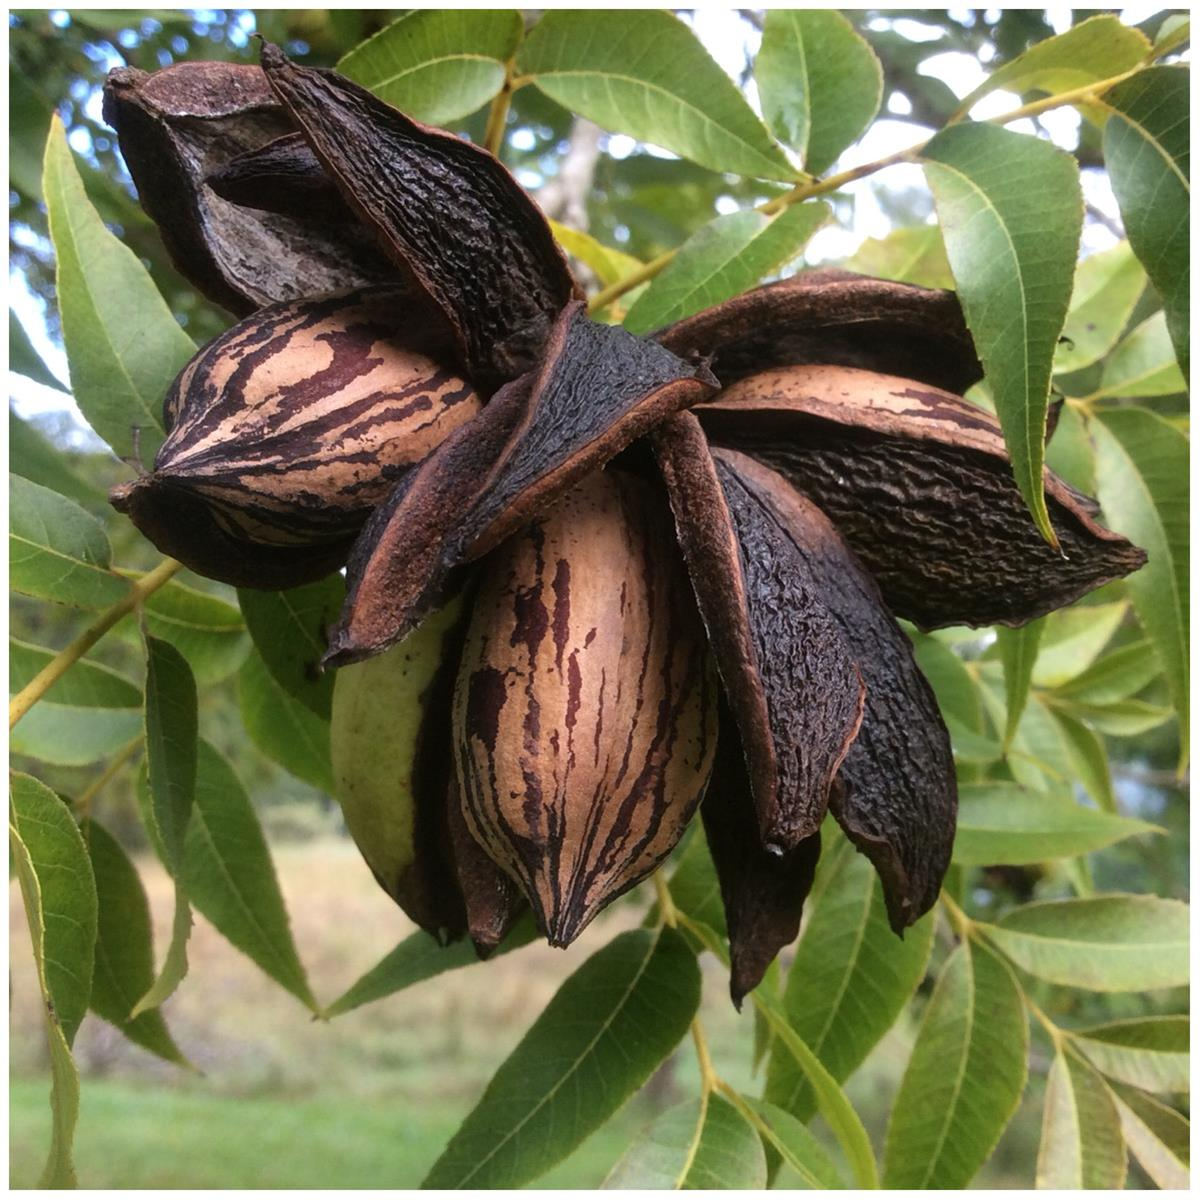 Shucks open and pecans are ready for harvest